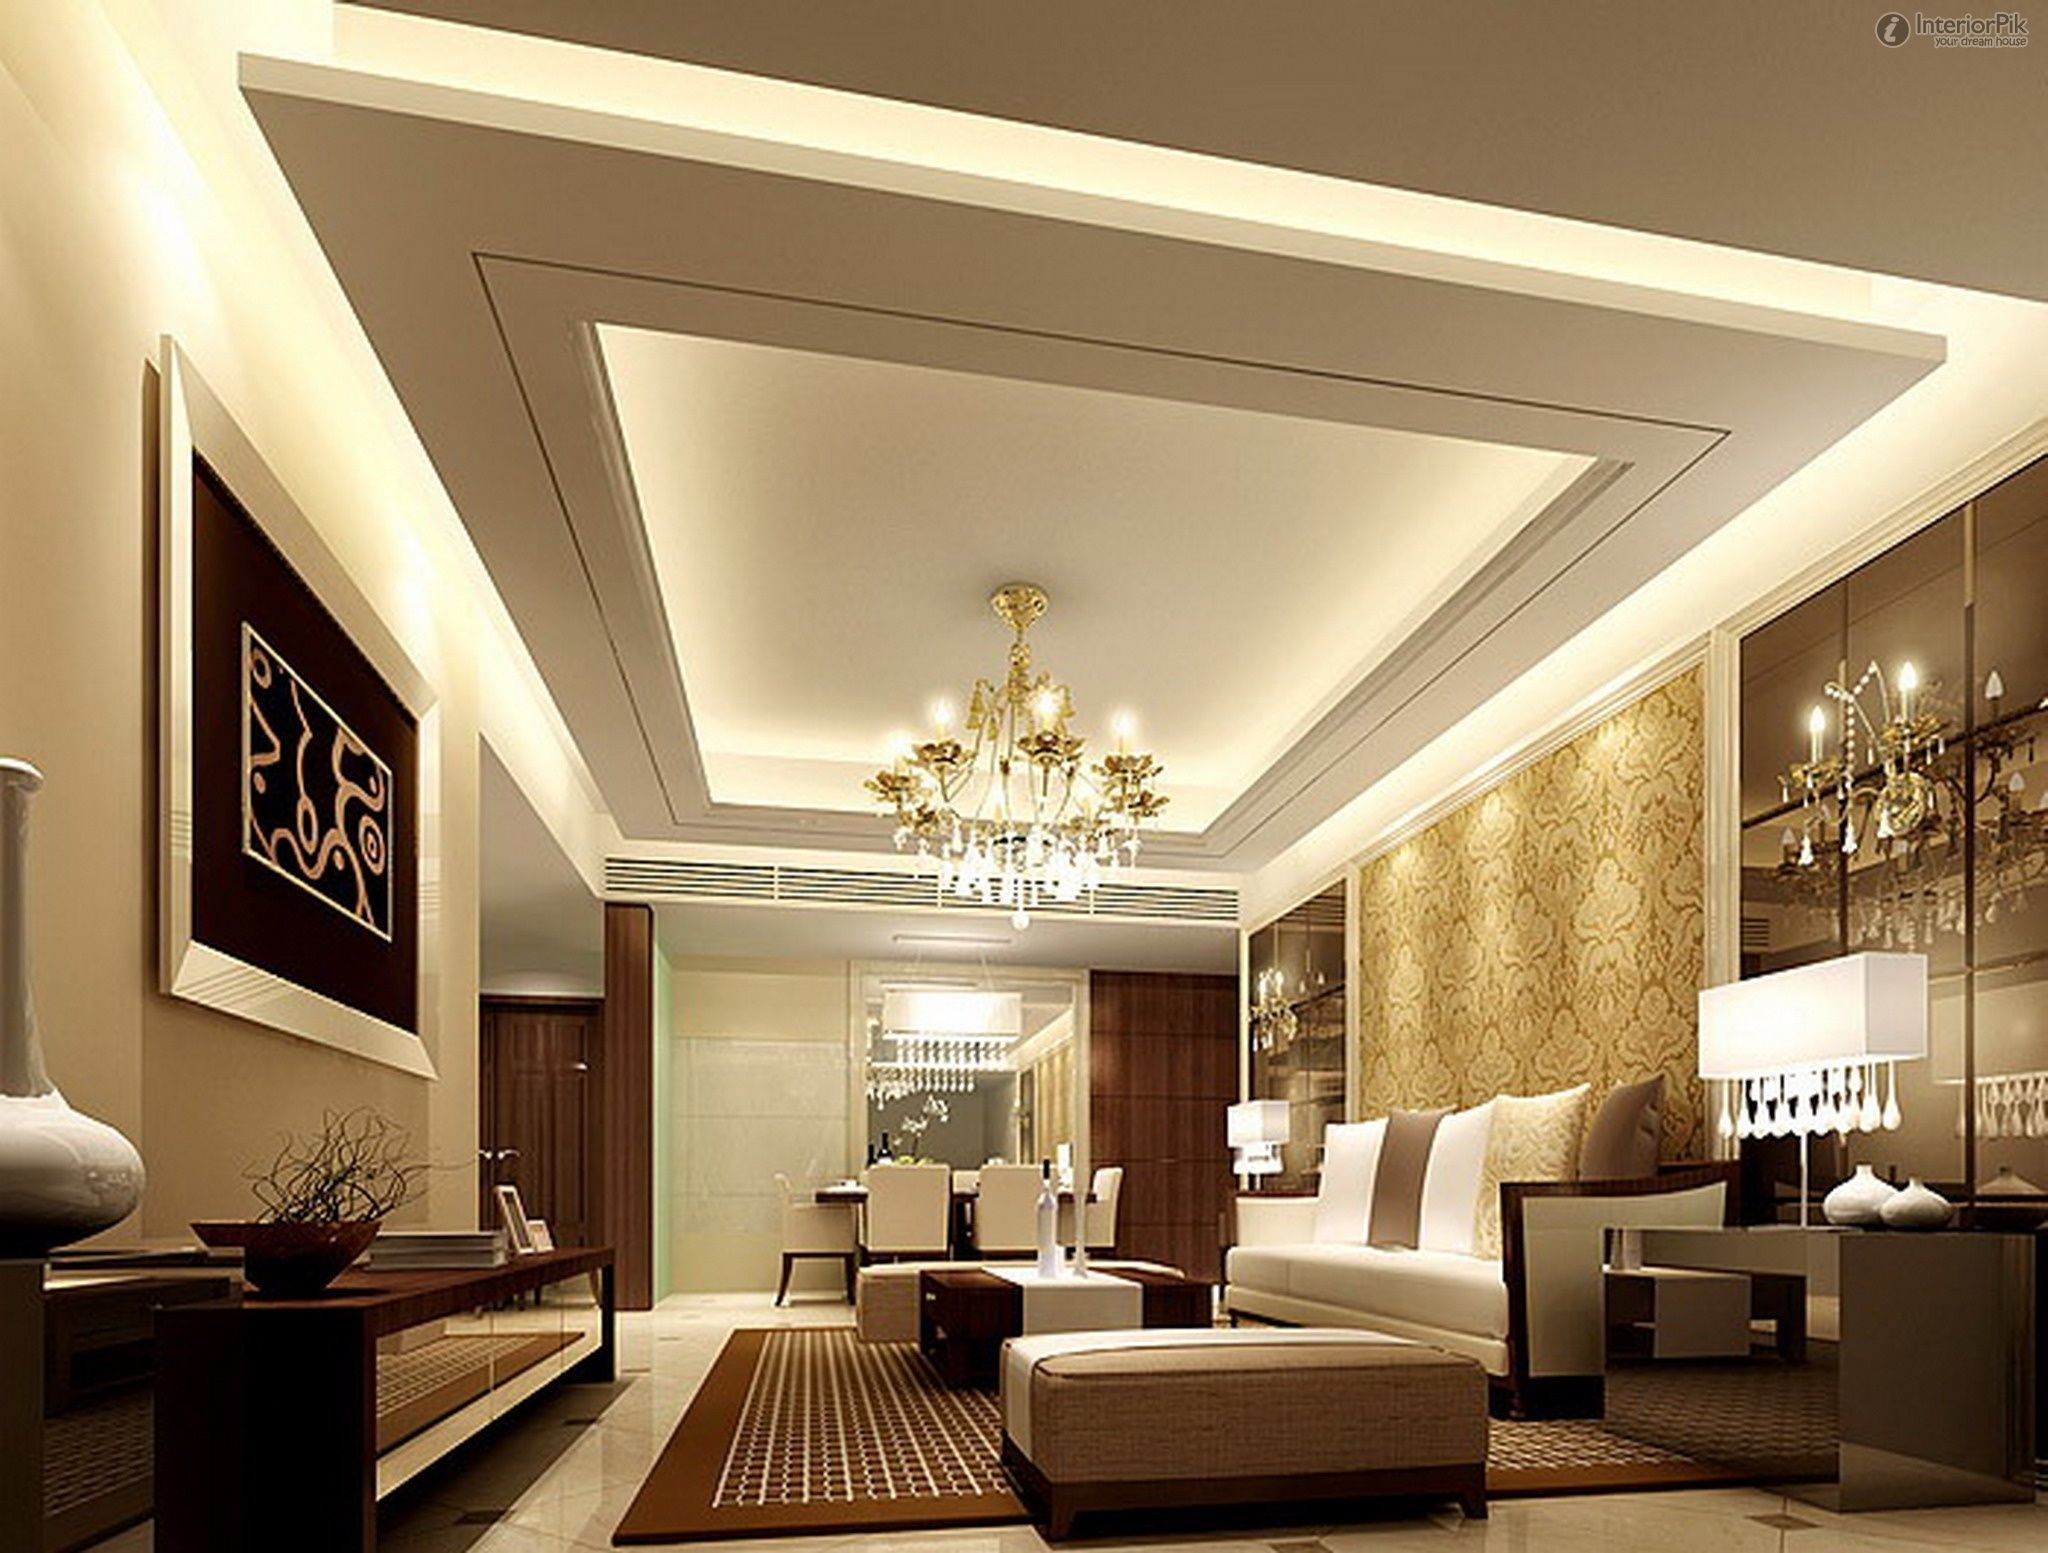 L Shaped Hall Ceiling Designs Unique Indirect Lighting In Tray Or